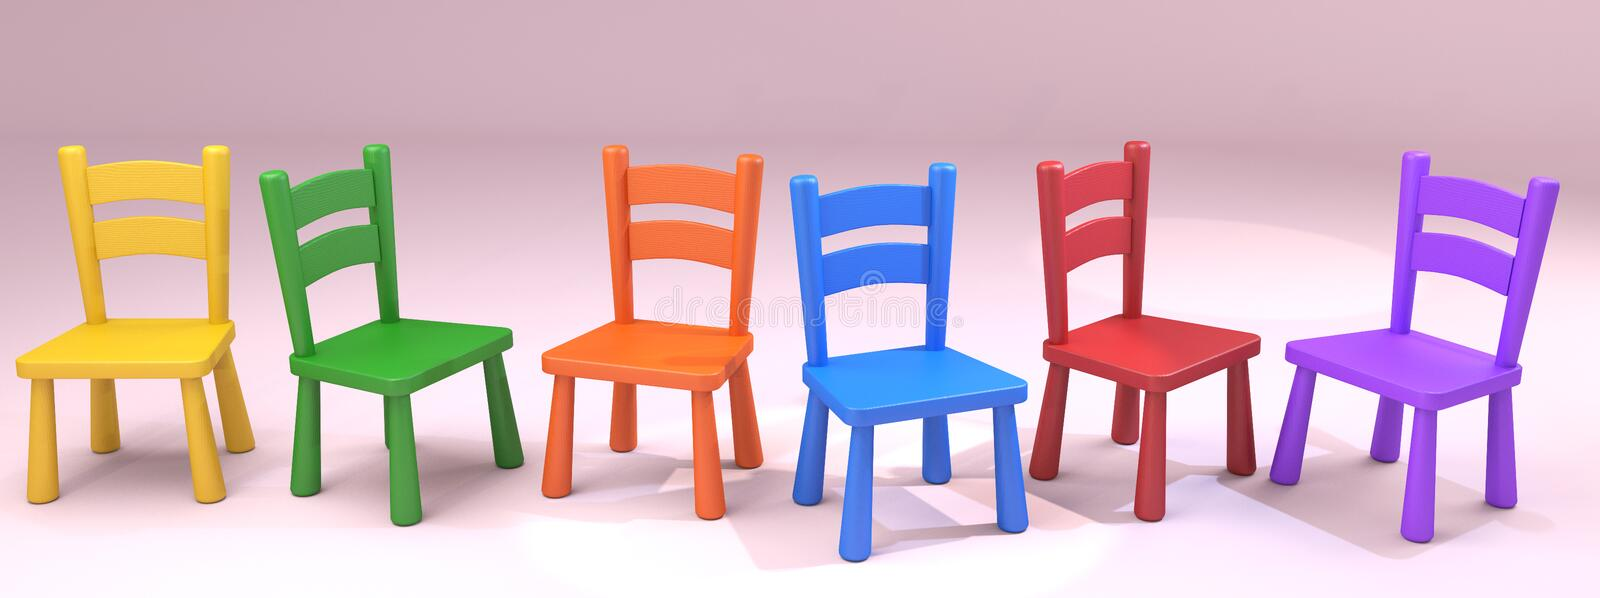 Download Colorful Wooden School Chairs Stock Illustration   Illustration Of  Decor, Furniture: 62109217